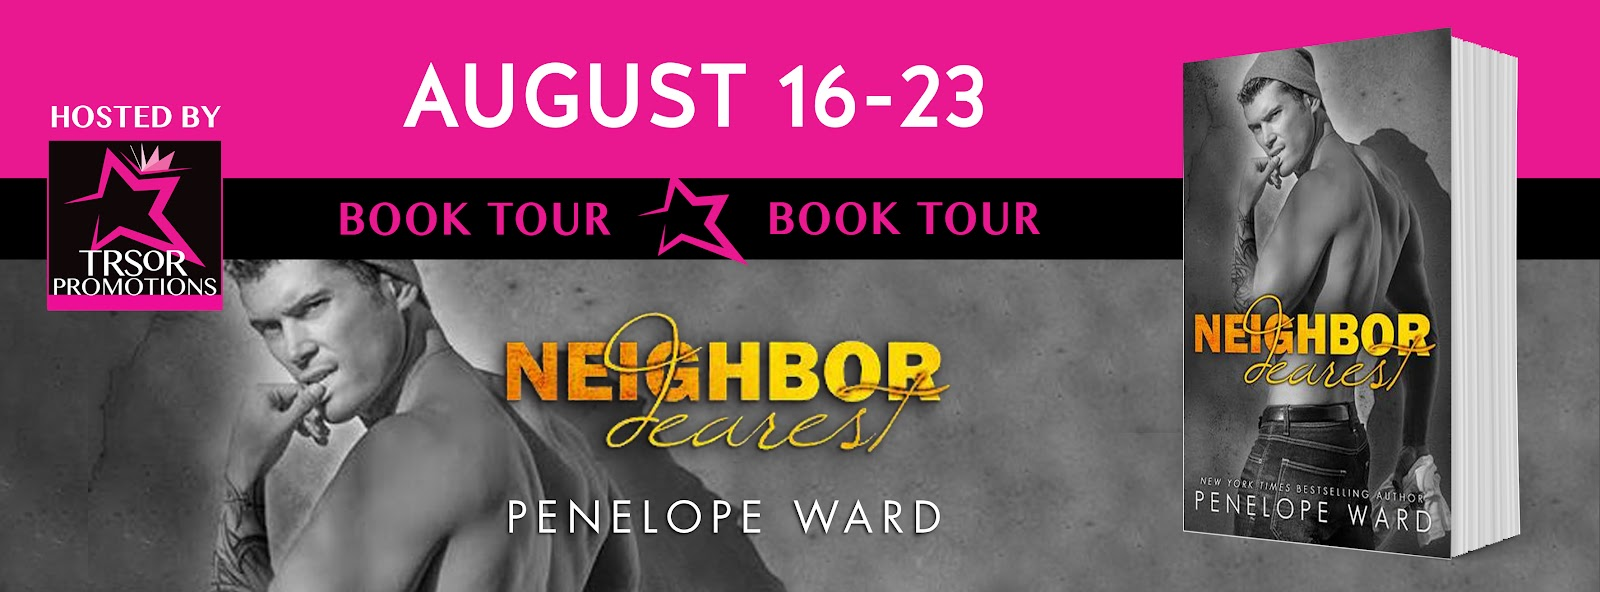 NEIGHBOR_DEAREST_BOOK_TOUR.jpg